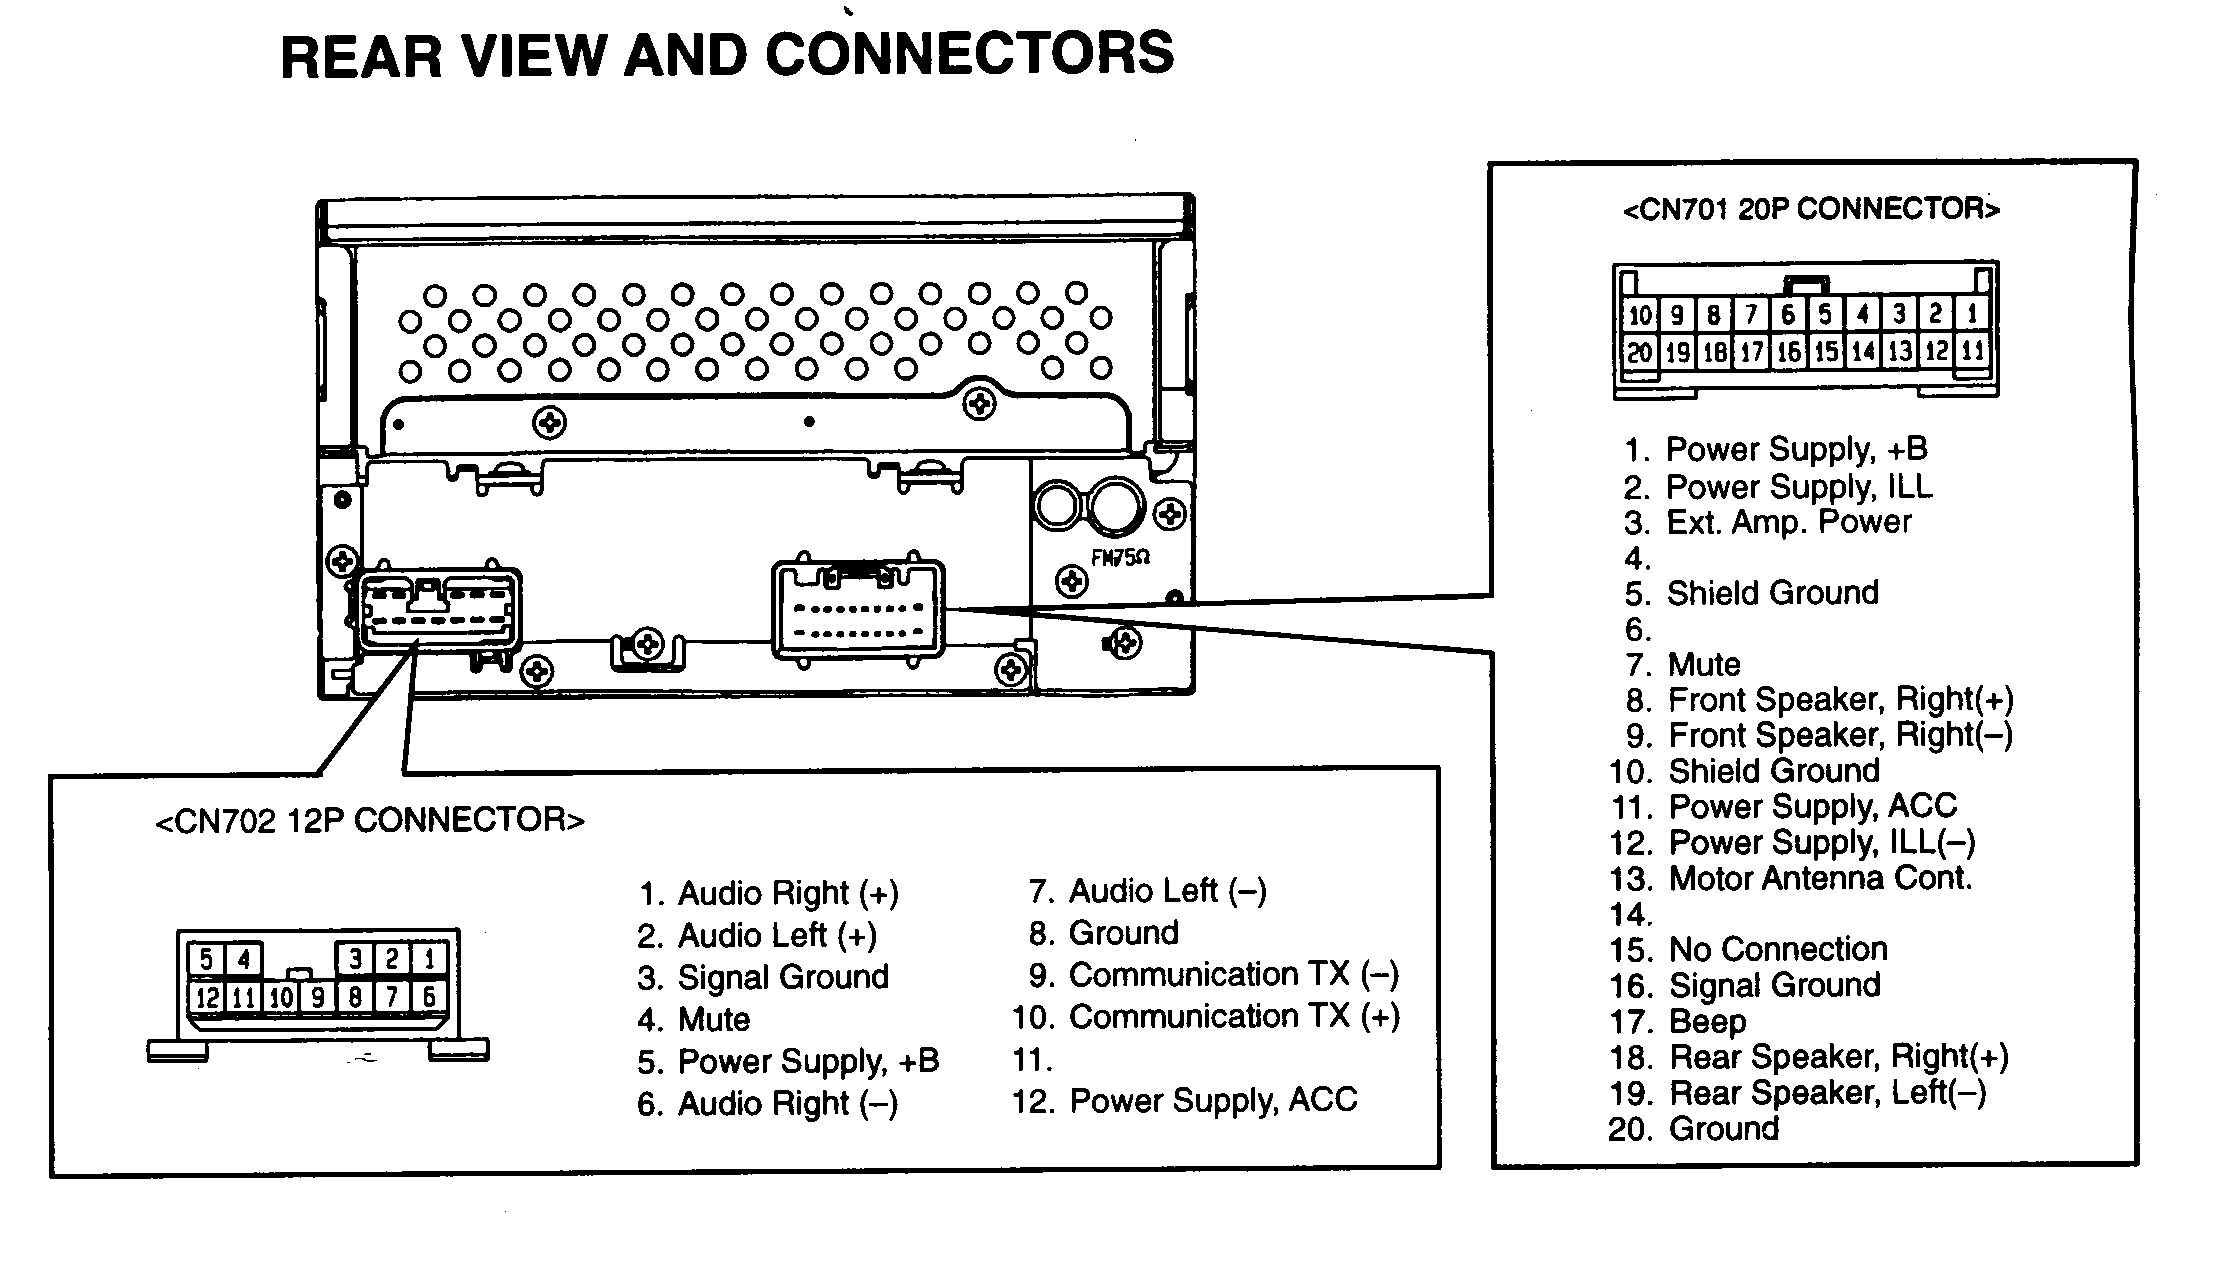 Wiring diagram car audio nakamichi car stereo wiring diagram fresh nakamichi car stereo wiring diagram fresh sony audio beautiful afif of wiring related post asfbconference2016 Choice Image